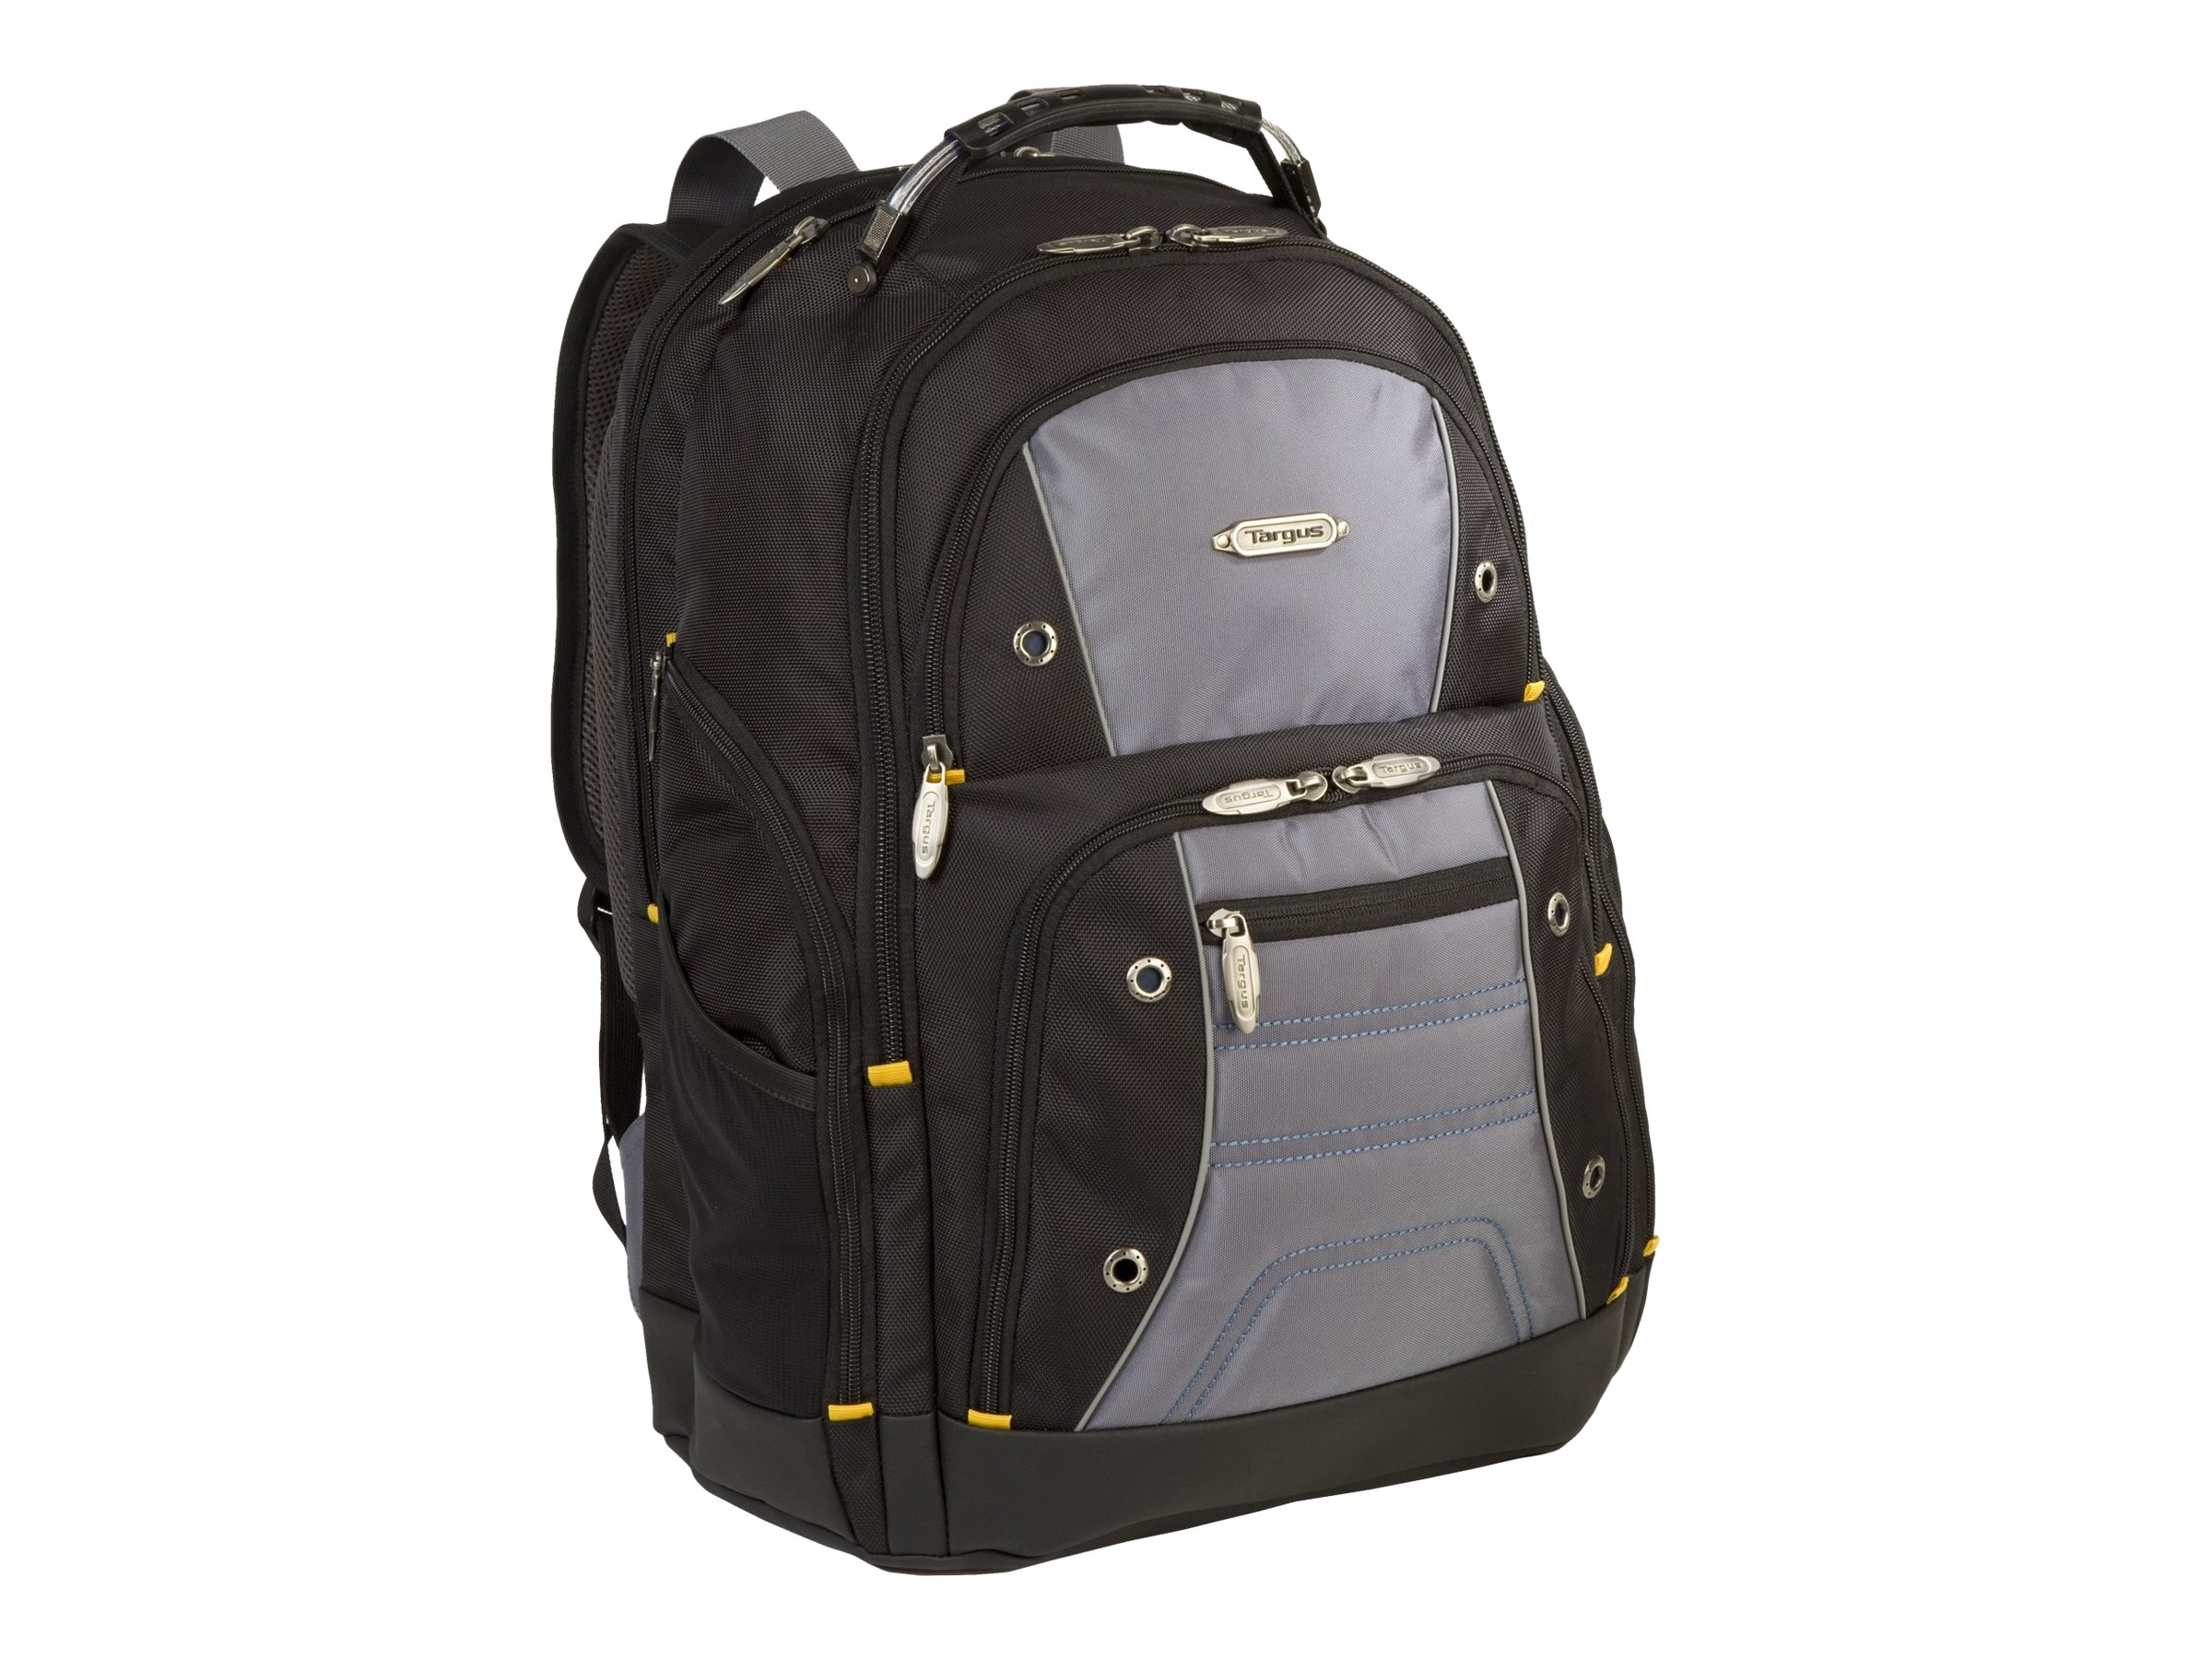 Targus Drifter II Laptop Backpack - 16